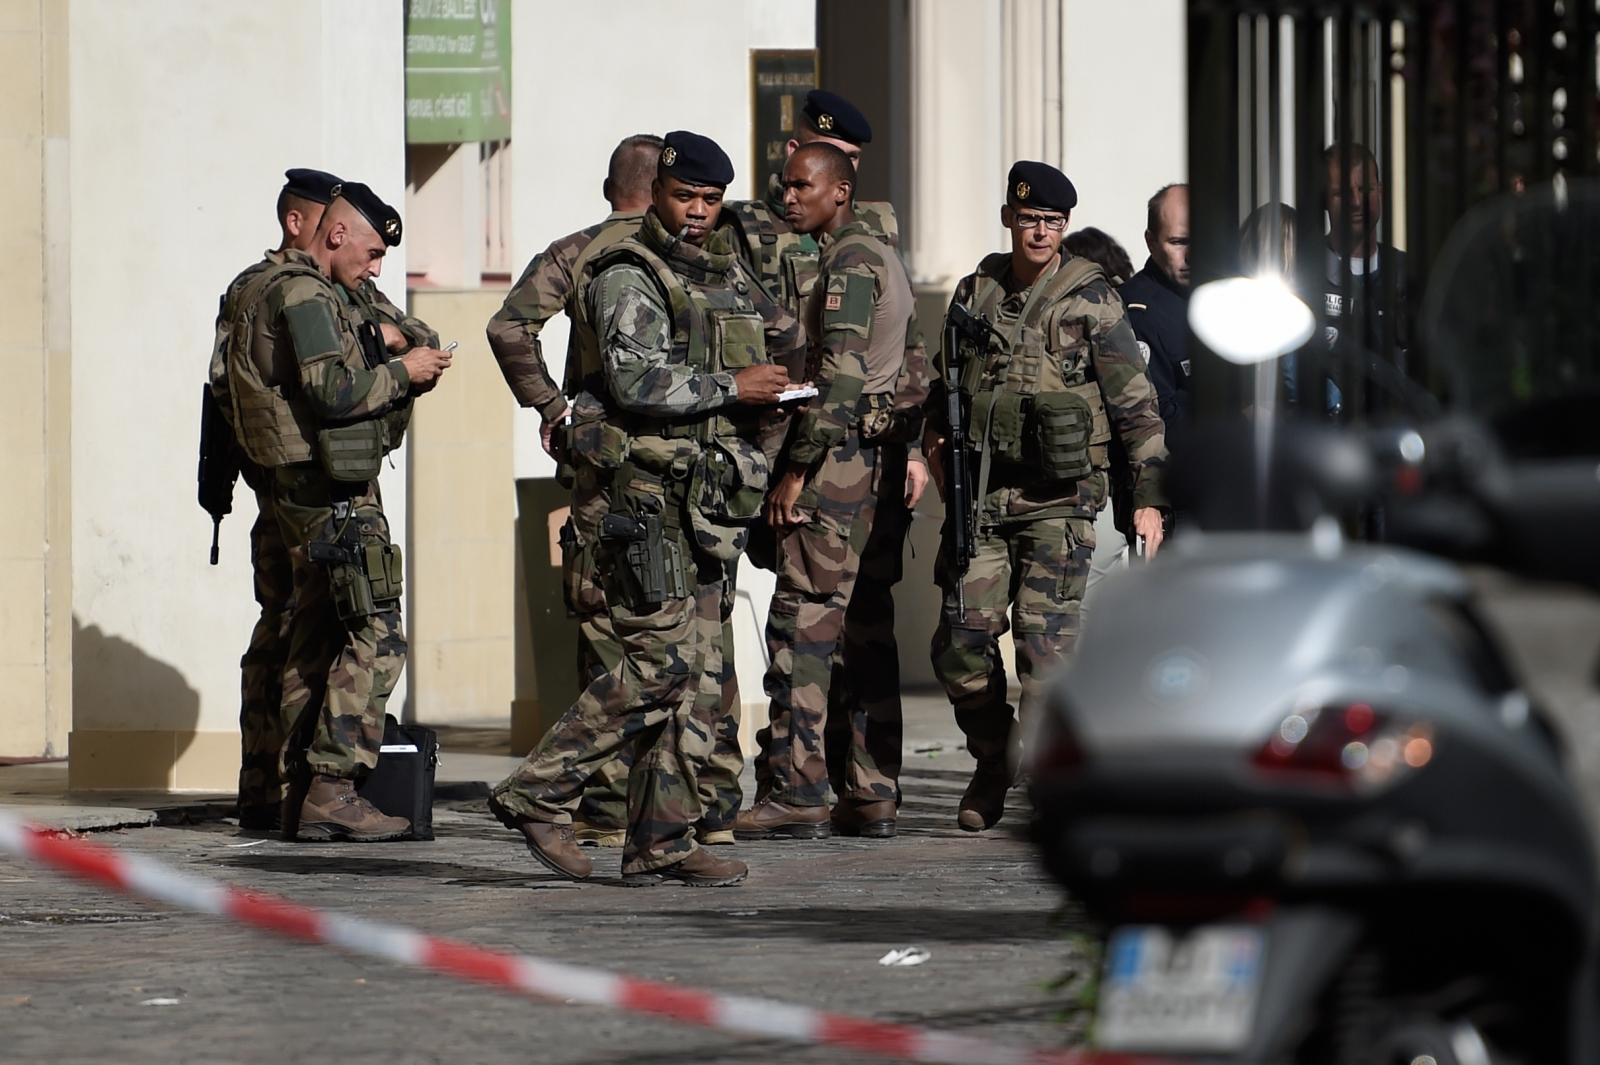 six-injured-after-car-rams-into-soldiers-in-paris-suburb